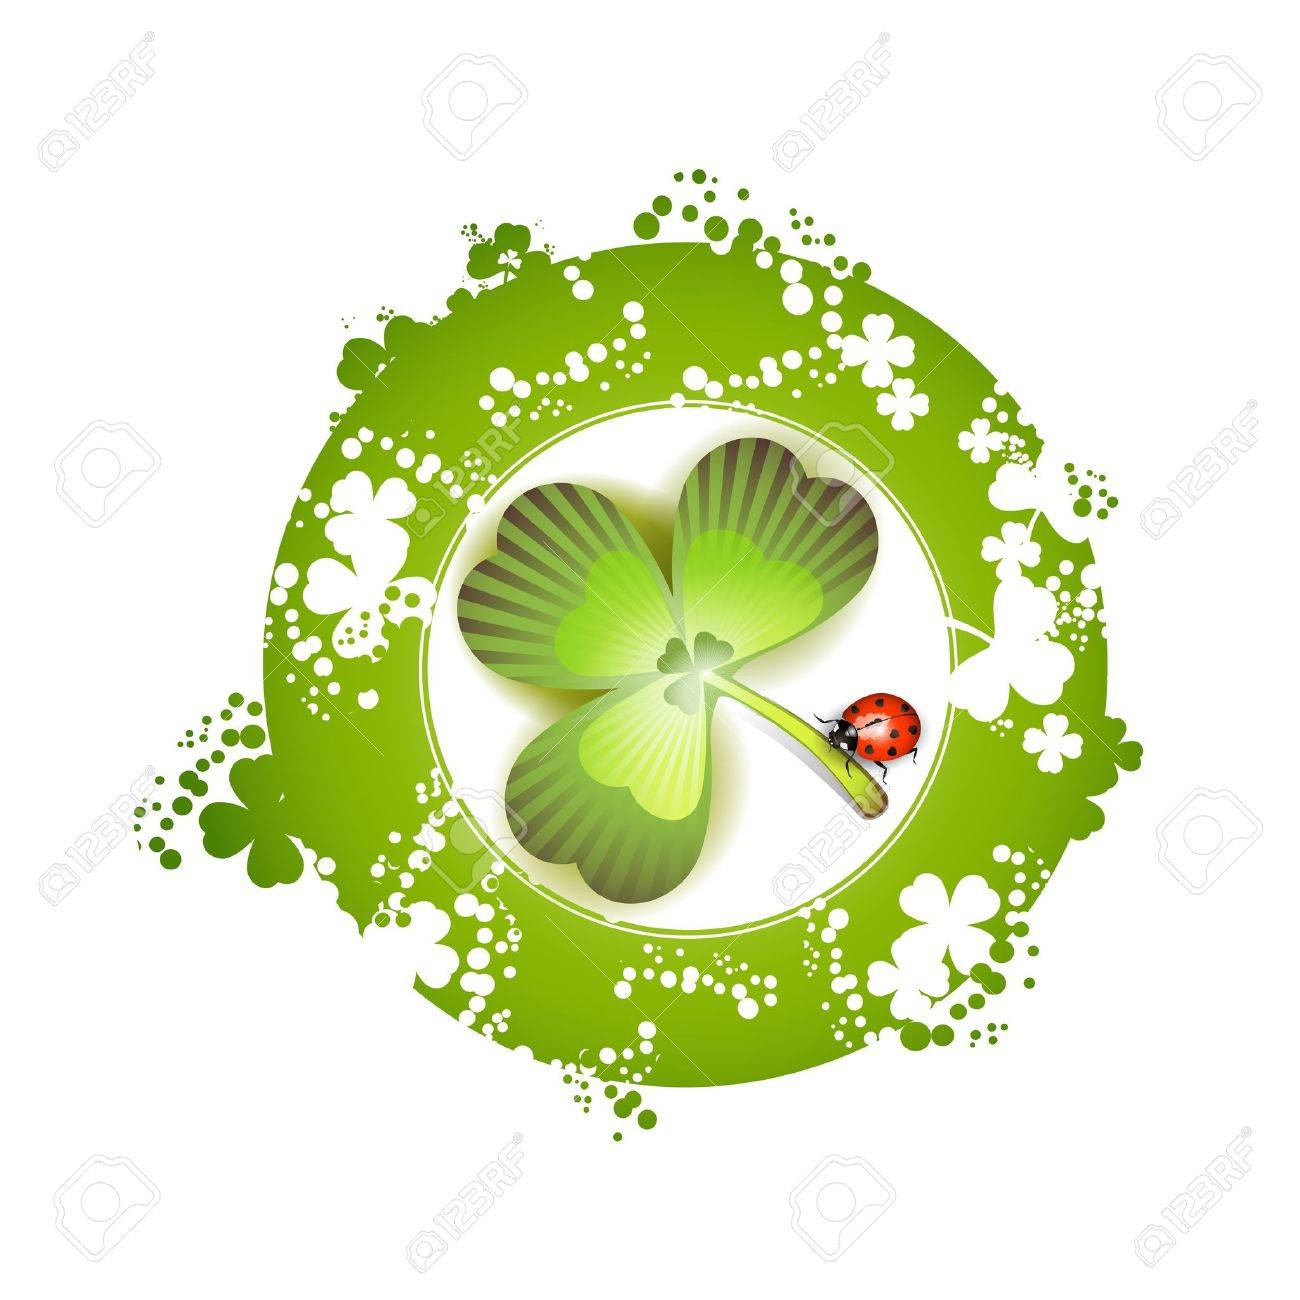 Clover and ladybug for St. Patrick's Day Stock Vector - 9100243